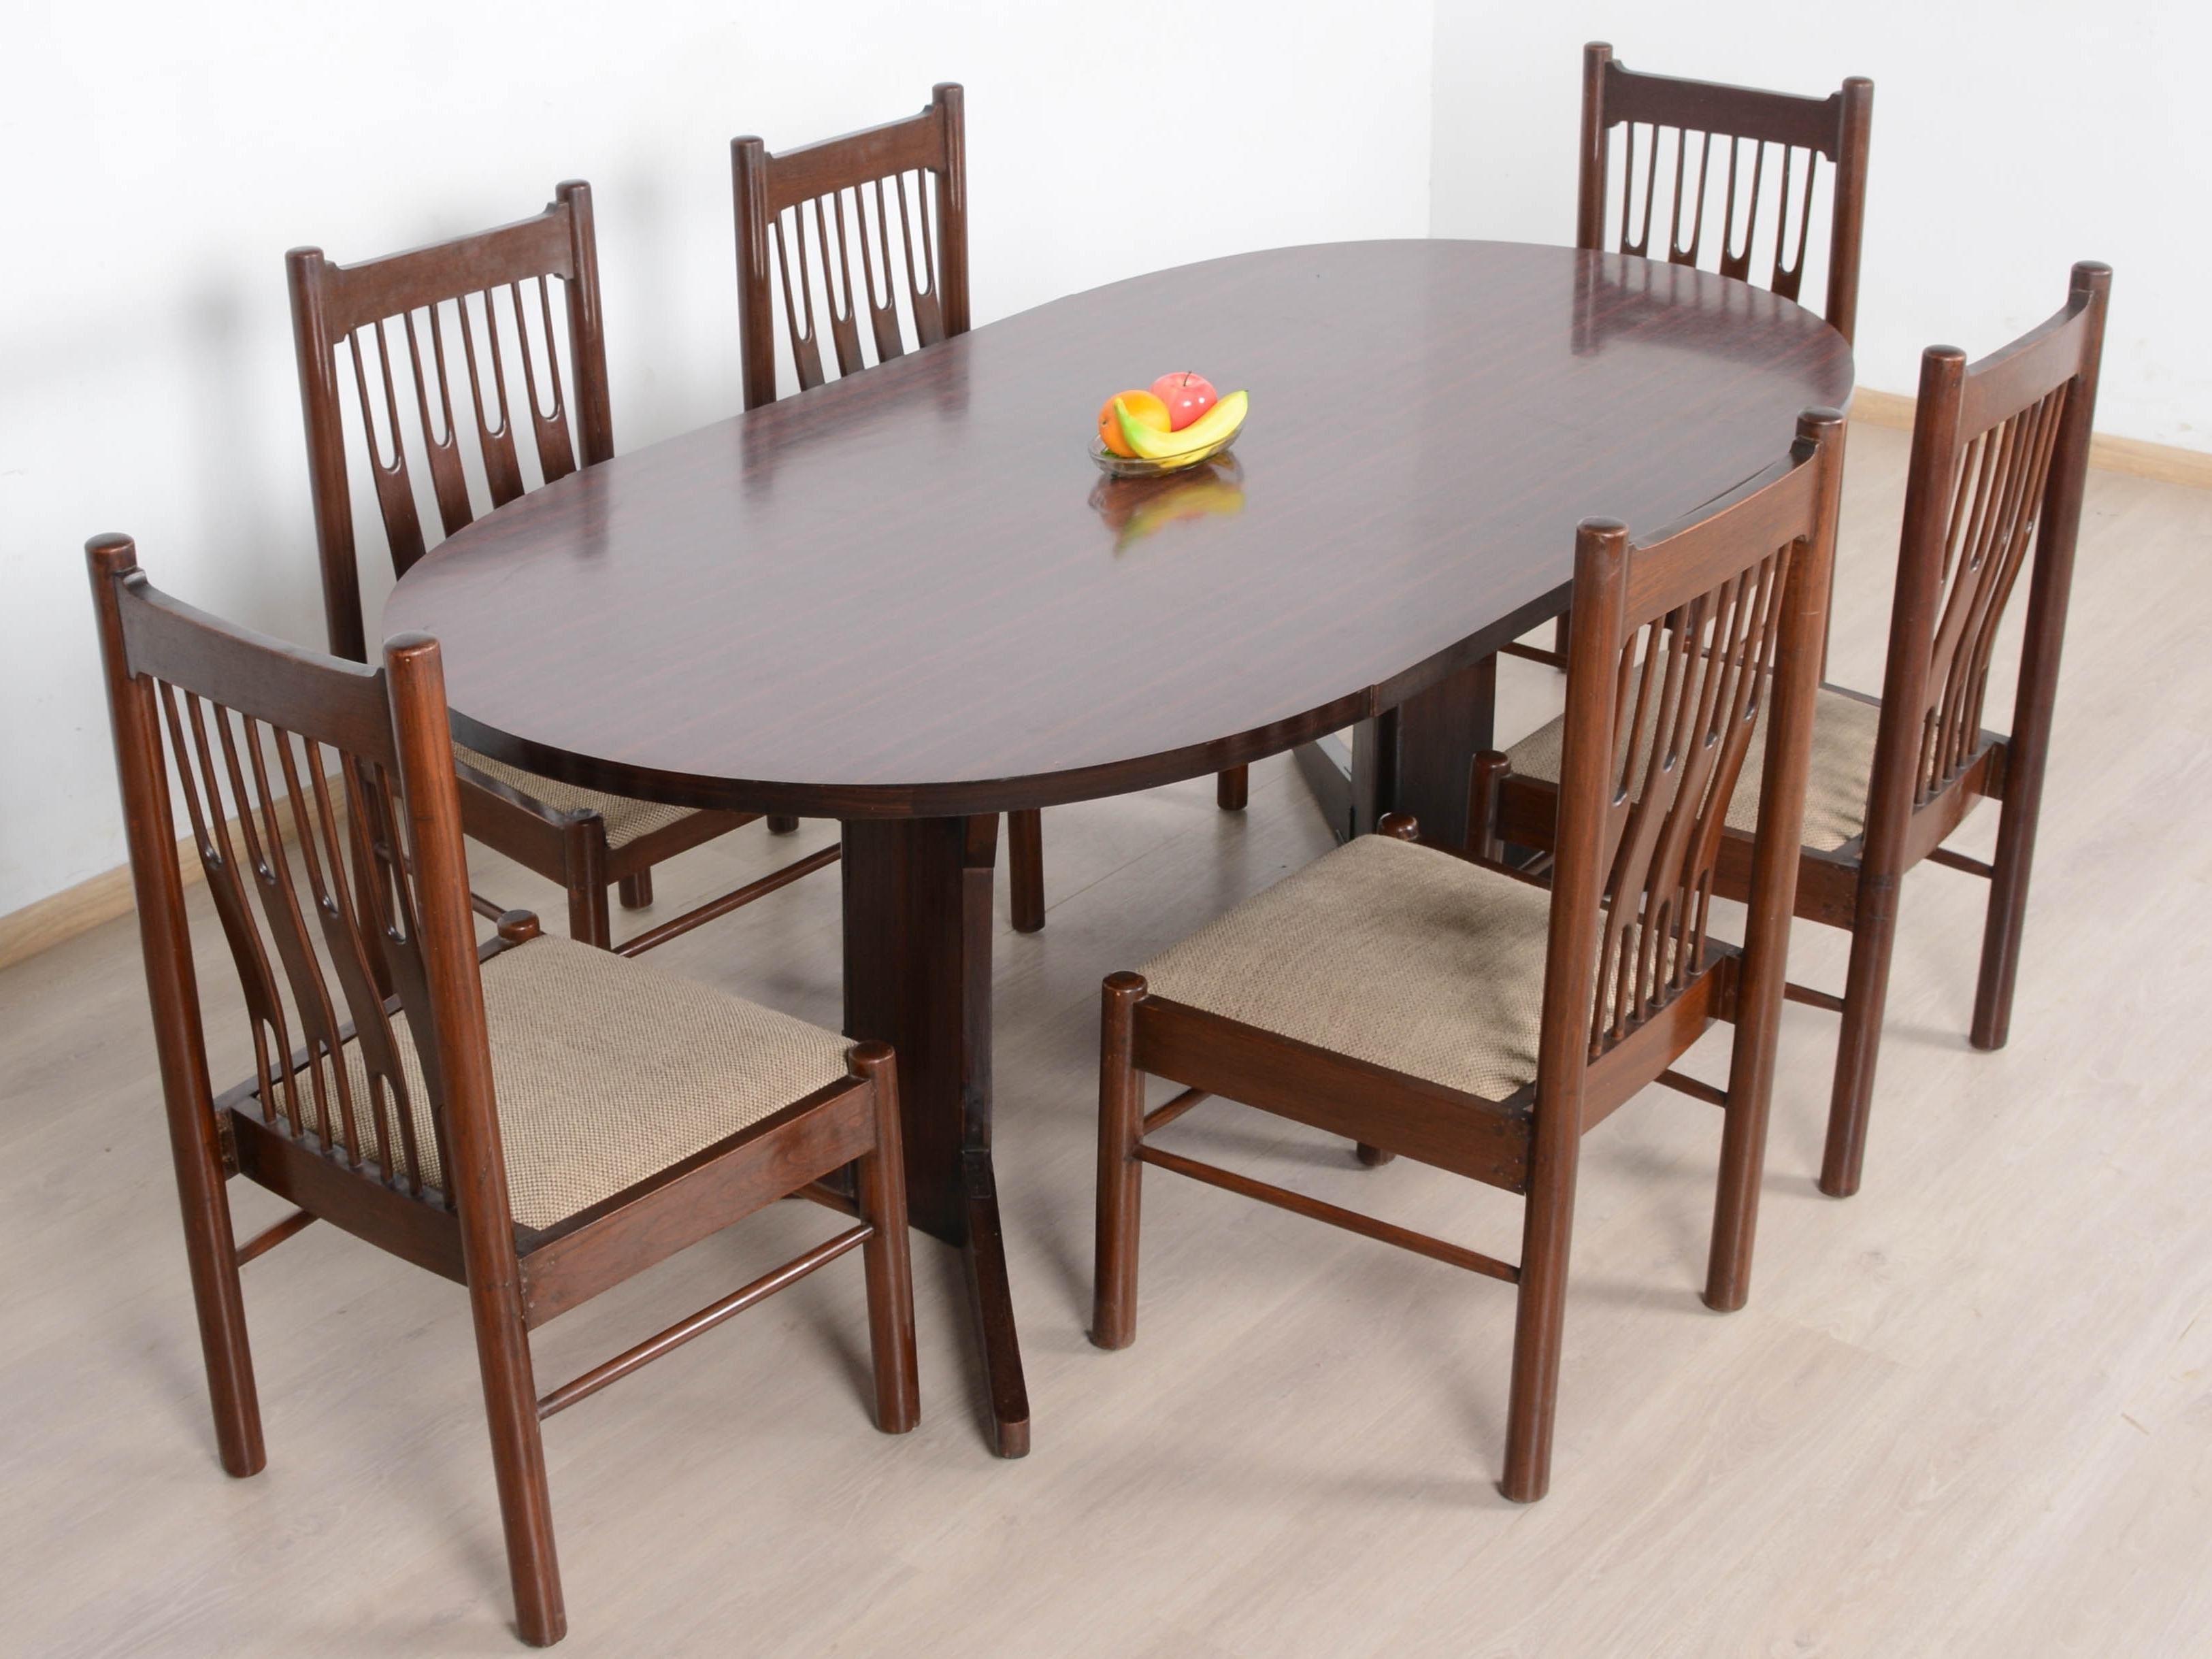 Most Recently Released Mason Teak 6 Seater Dining Table Set: Buy And Sell Used Furniture Pertaining To 6 Seat Dining Tables And Chairs (View 11 of 25)